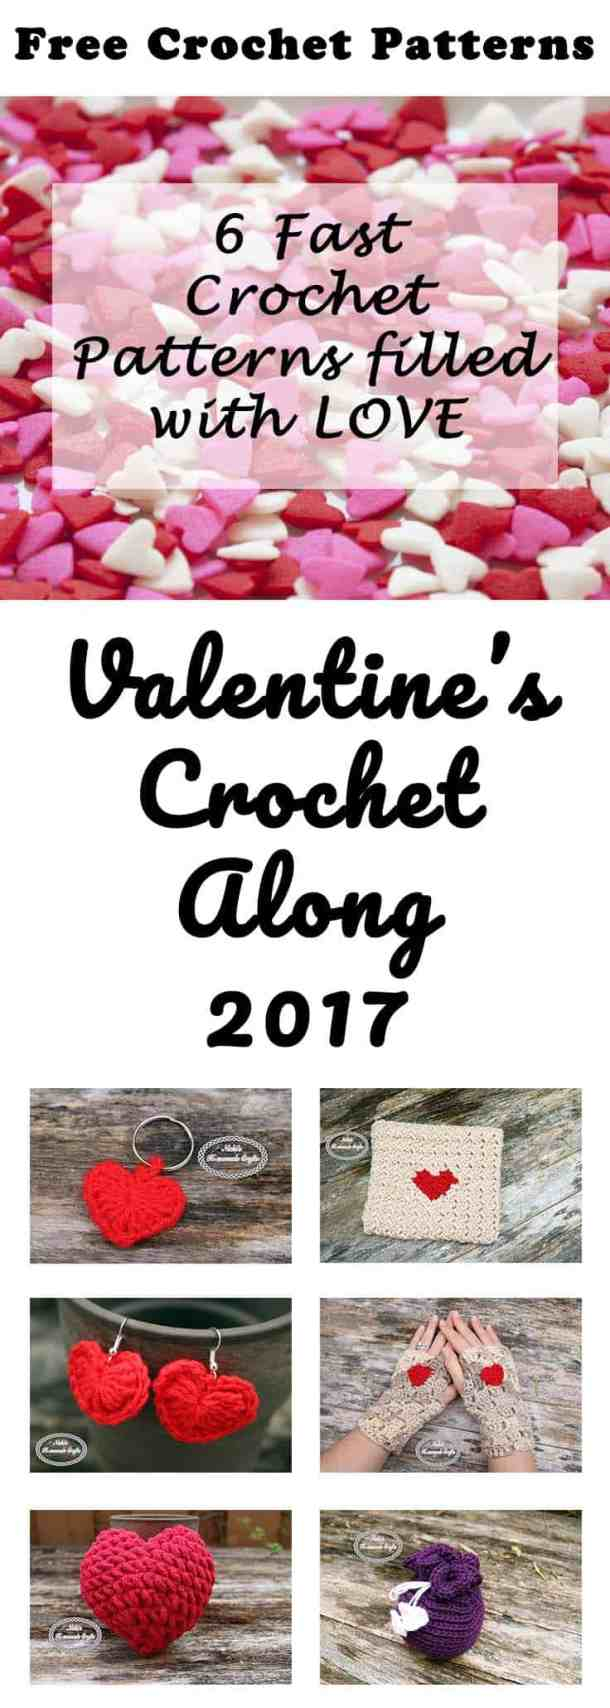 Valentine's CAL 2017 Free Crochet Patterns by Nicki's Homemade Crafts #crochet #crochetalong #freecrochetpatterns #heart #love #valentinesday